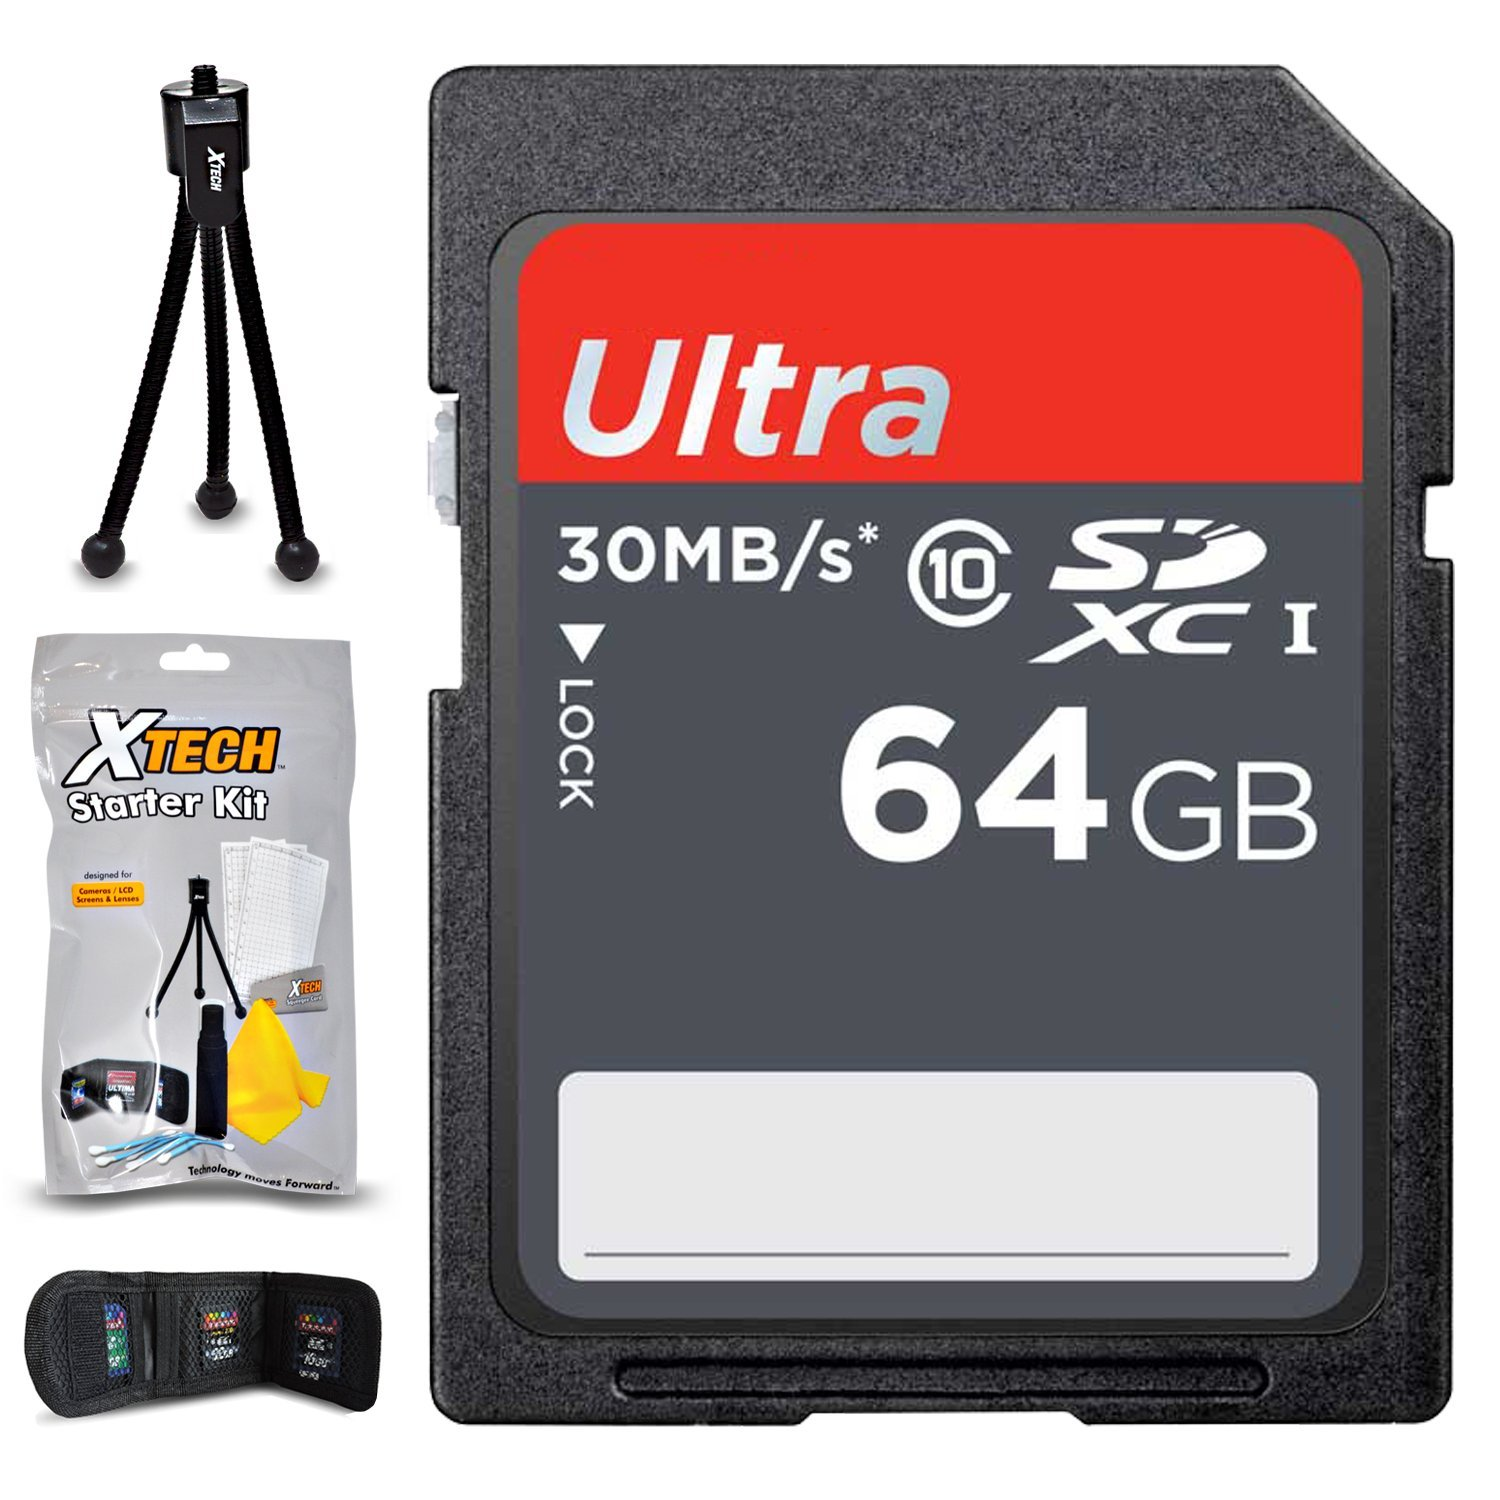 32GB SD Memory Card (High-Speed) + Xtech Starter Kit for Olympus Cameras including Olympus PEN E-PL8, PEN E-PL7, Stylus SH-3, PEN-F, PEN E-P5, PEN E-PL6 (64GB Memory Card)